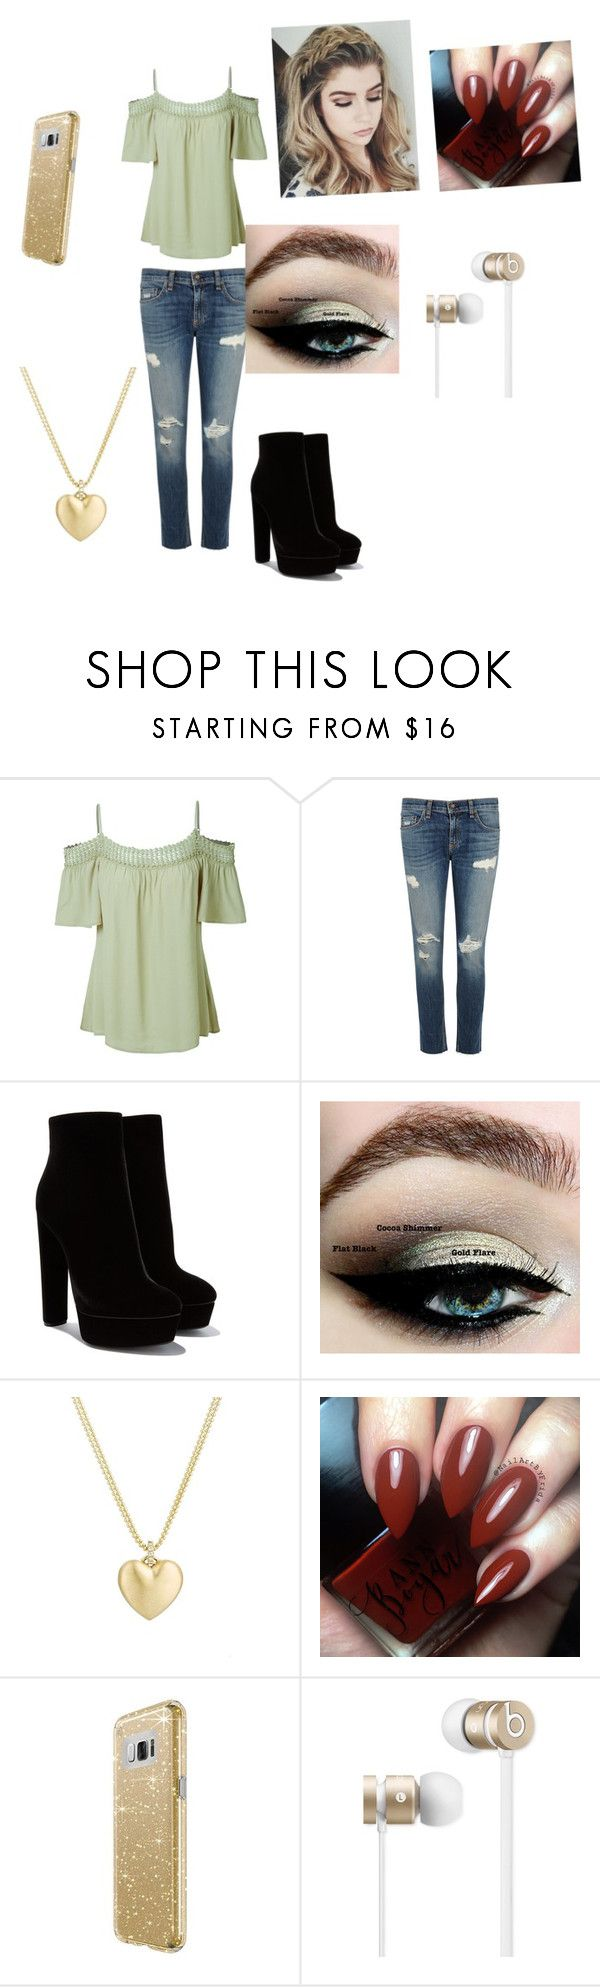 """""""day out"""" by emilyagee-367 ❤ liked on Polyvore featuring LE3NO, rag & bone/JEAN, Finn, Speck and Beats by Dr. Dre"""